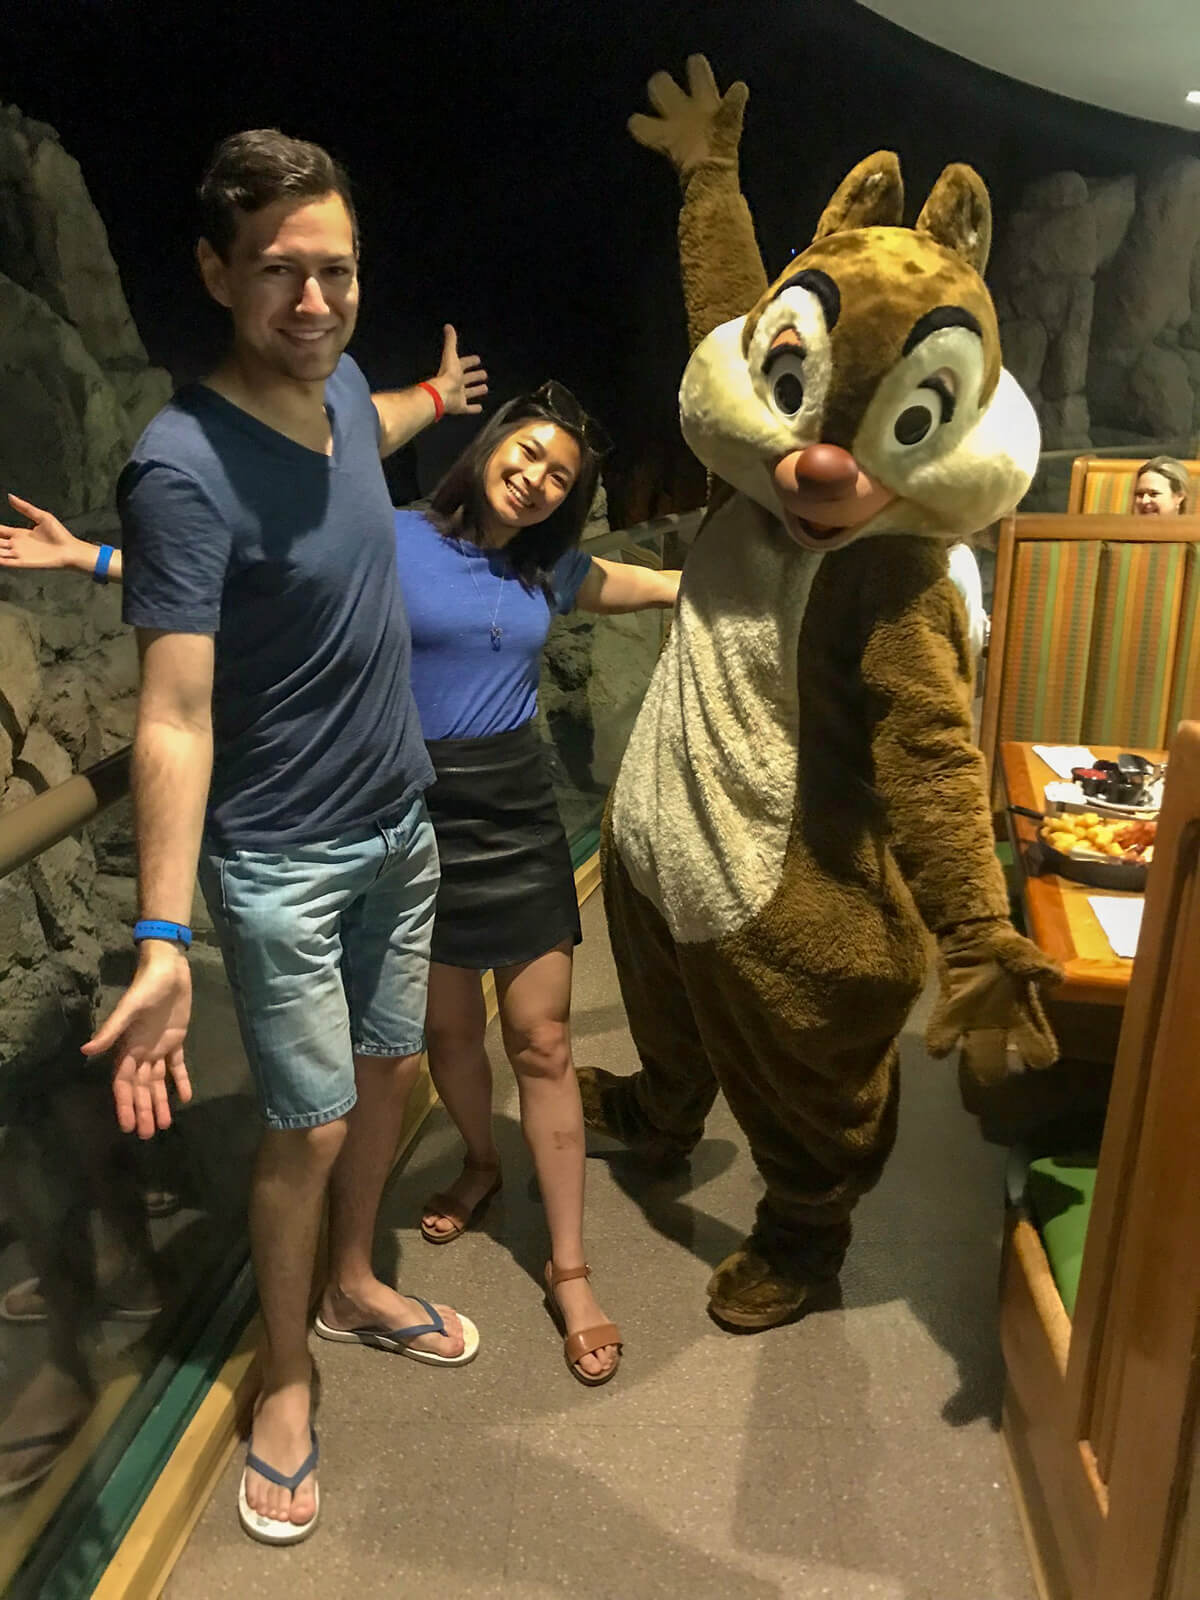 A man and woman with their arms outstretched, alongside someone in a chipmunk costume making the same arm movement